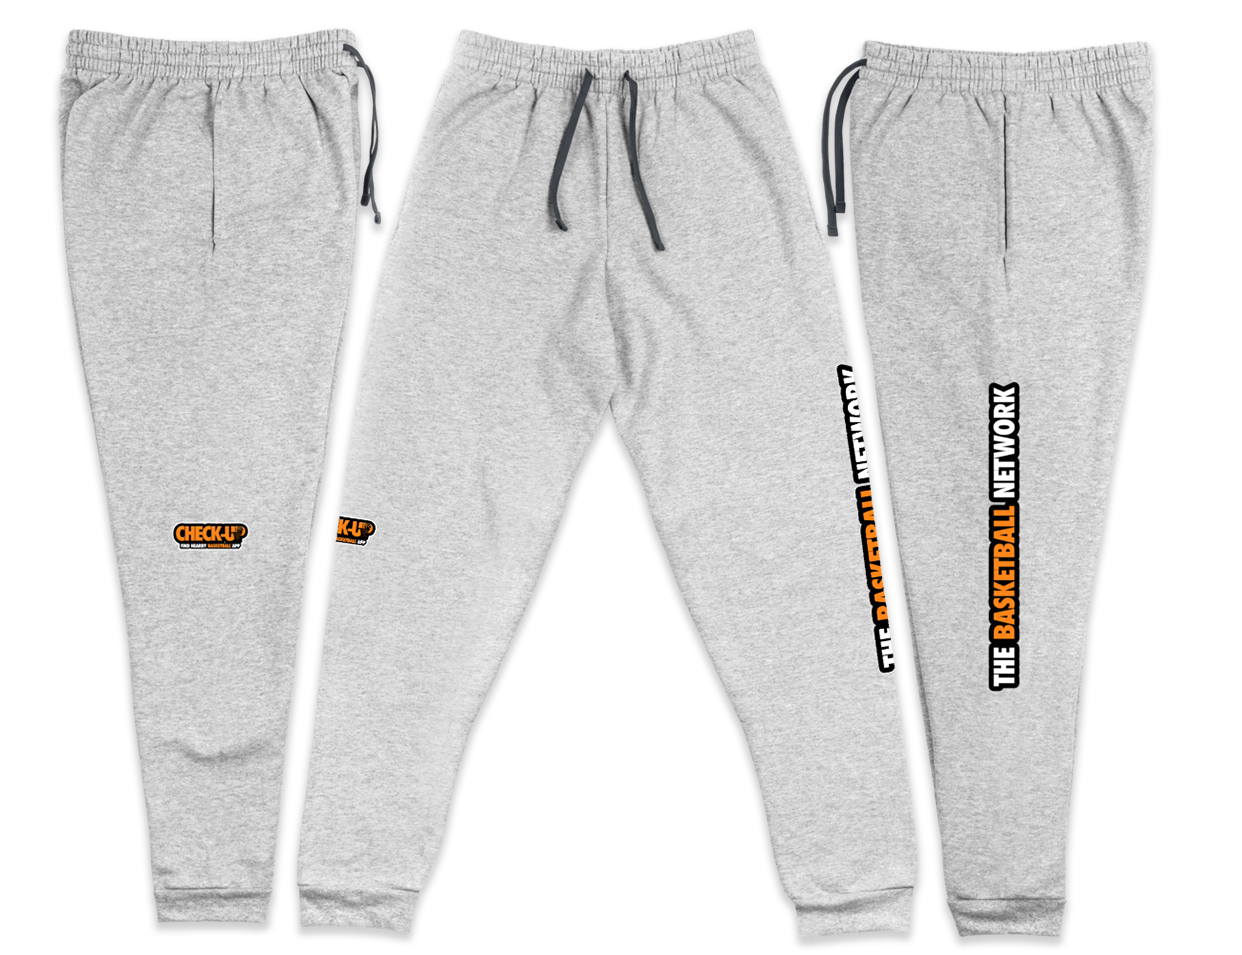 Image of The Basketball Network Joggers